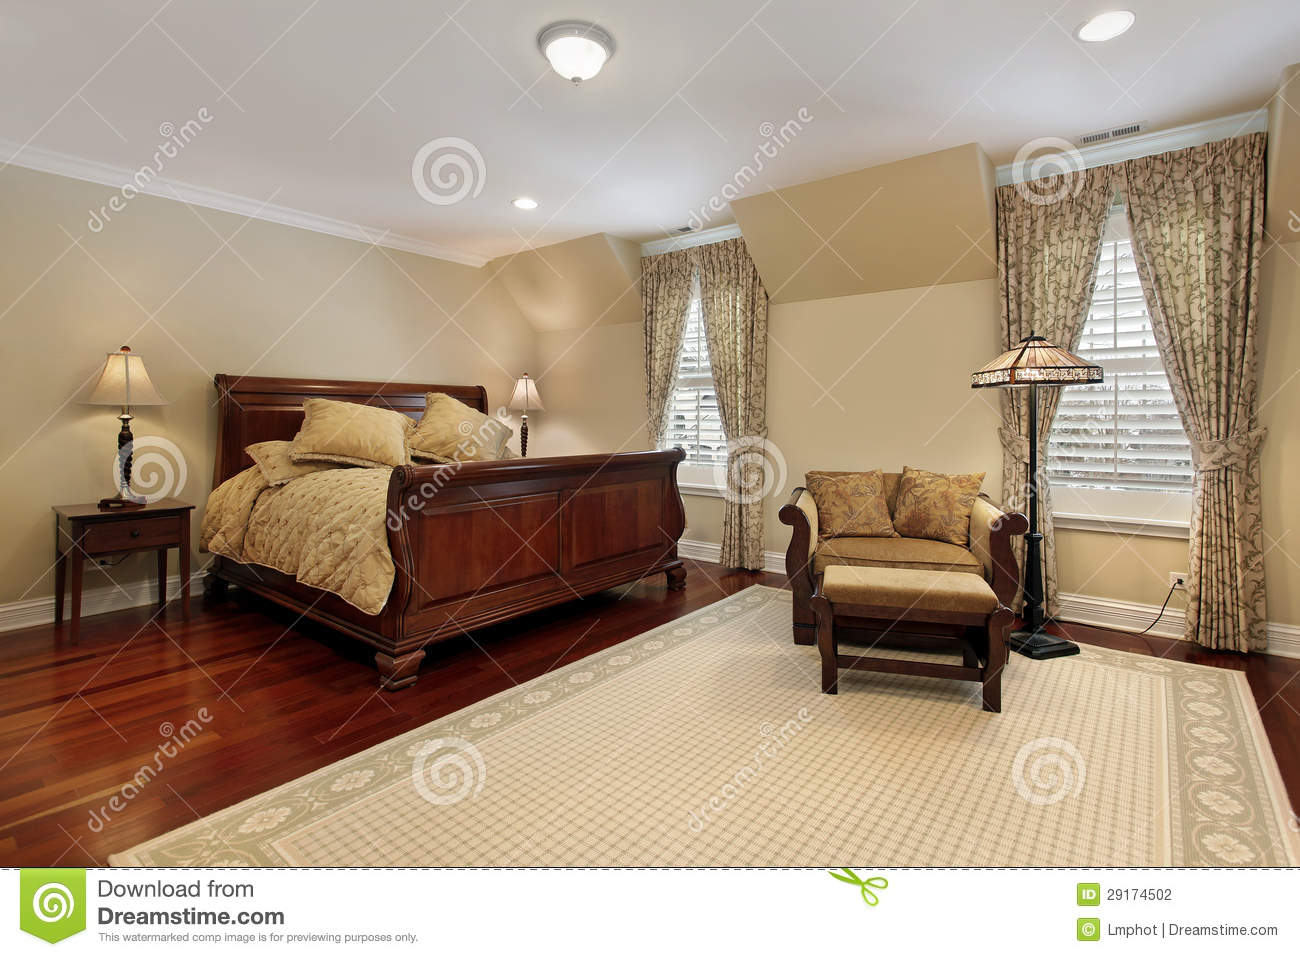 Bedroom Bed Design Wood